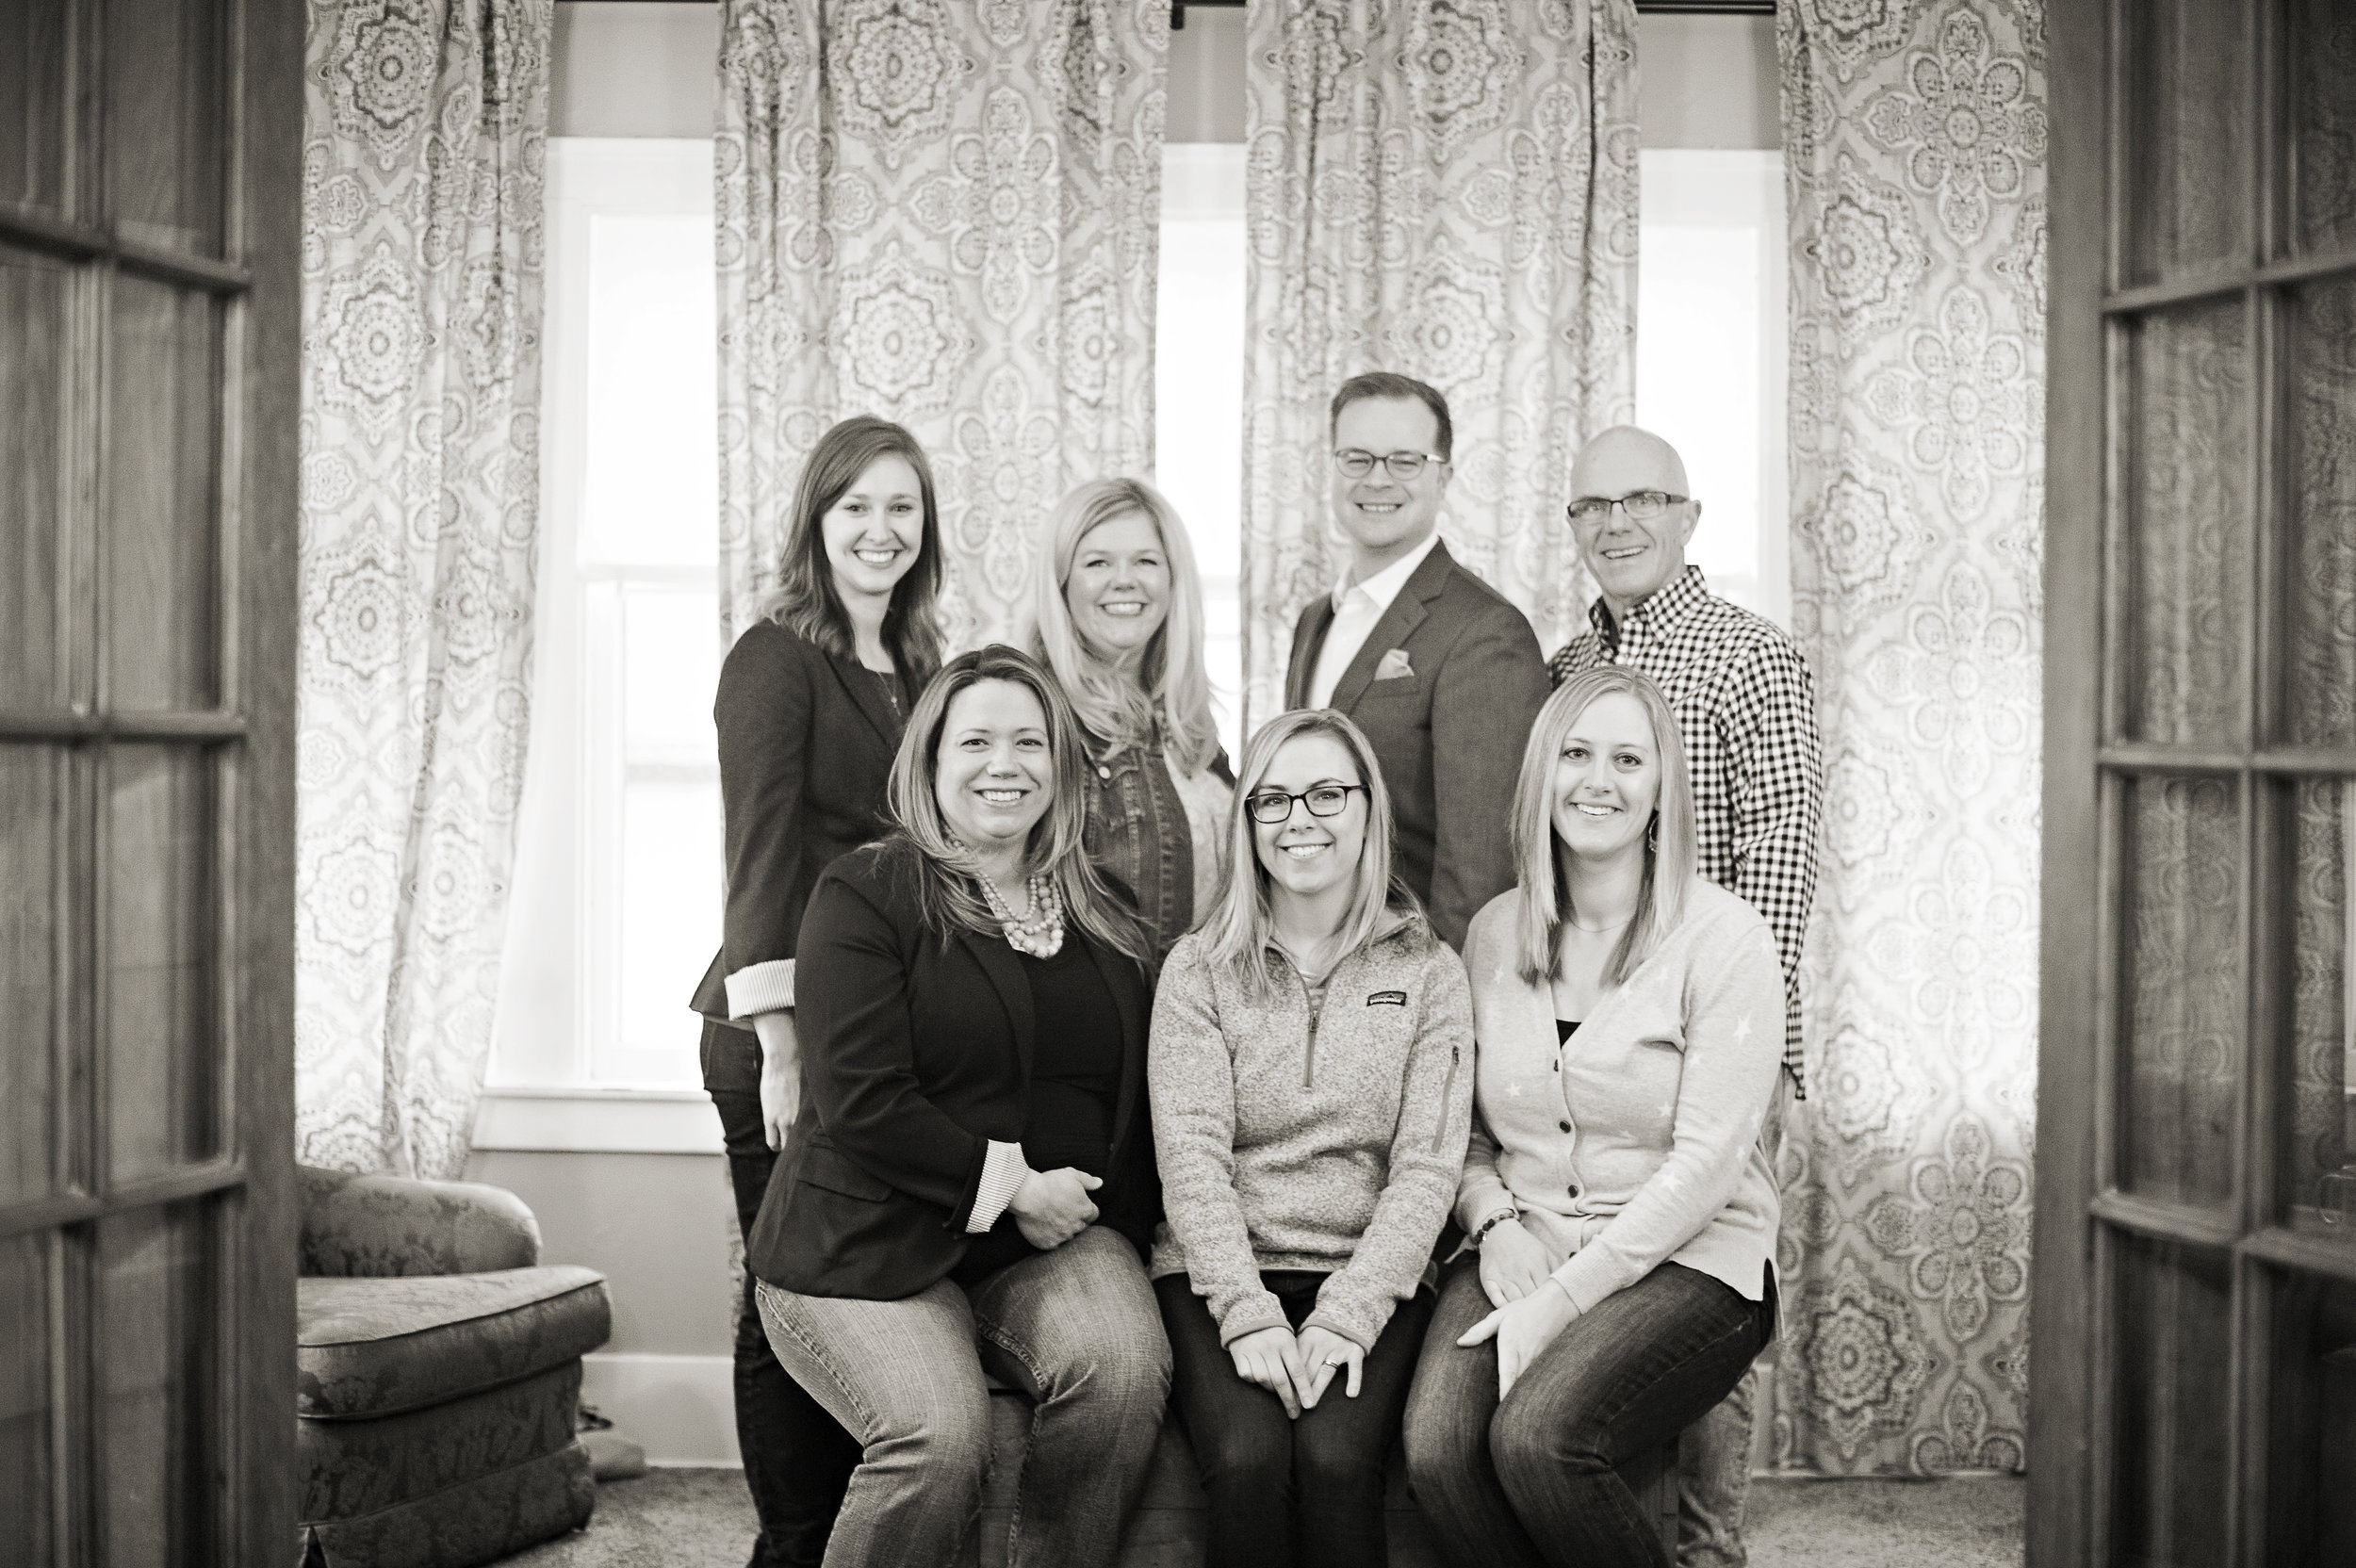 Back Row: Kristin Paul, Lisa E. Anderson, Brian Burch, Wendell Anderson Front Row: Emily Halloran, Meaghan Miracle, Amy Butterfield